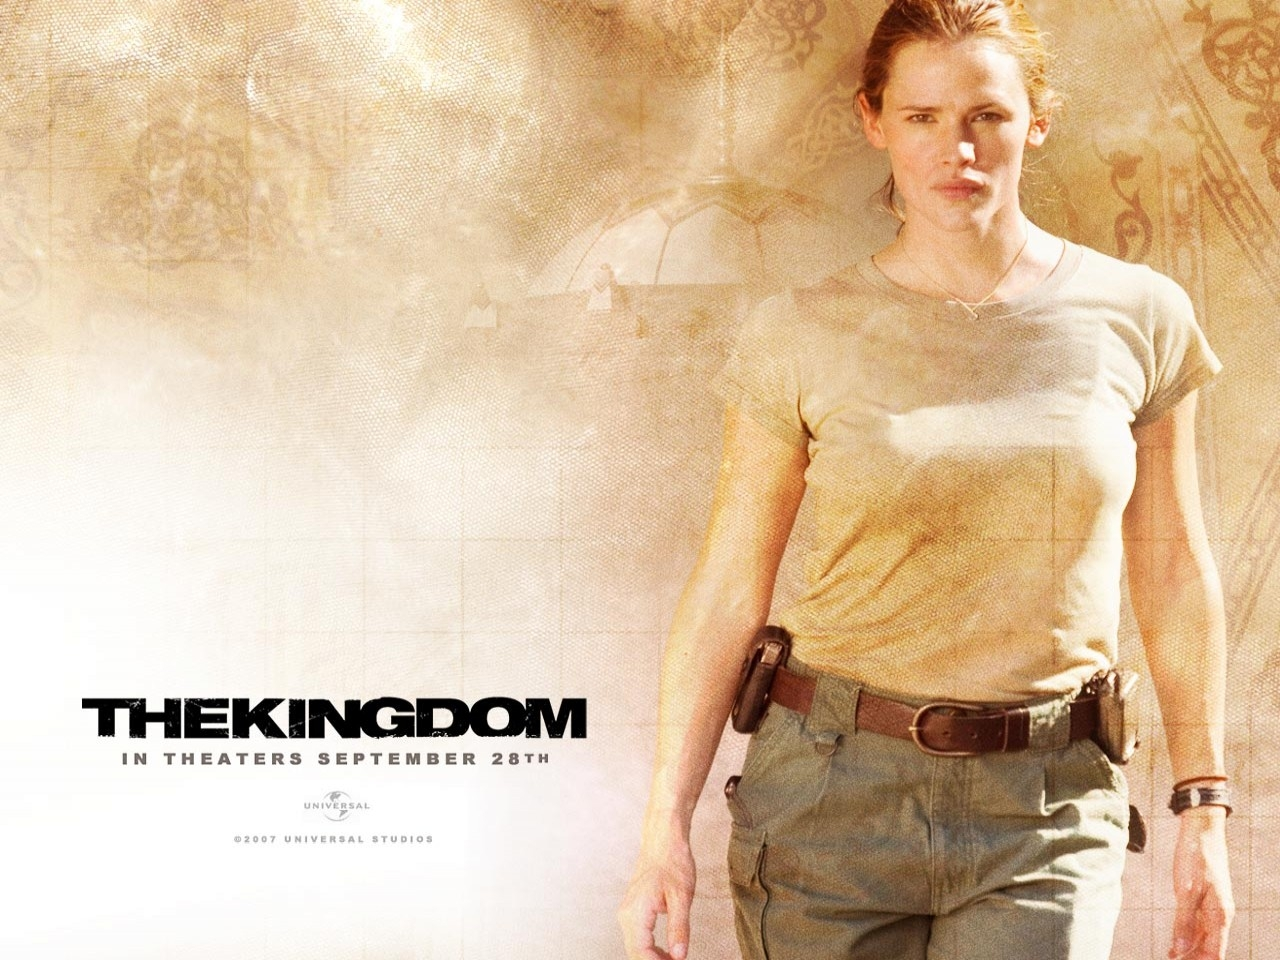 Wallpaper del film The Kingdom